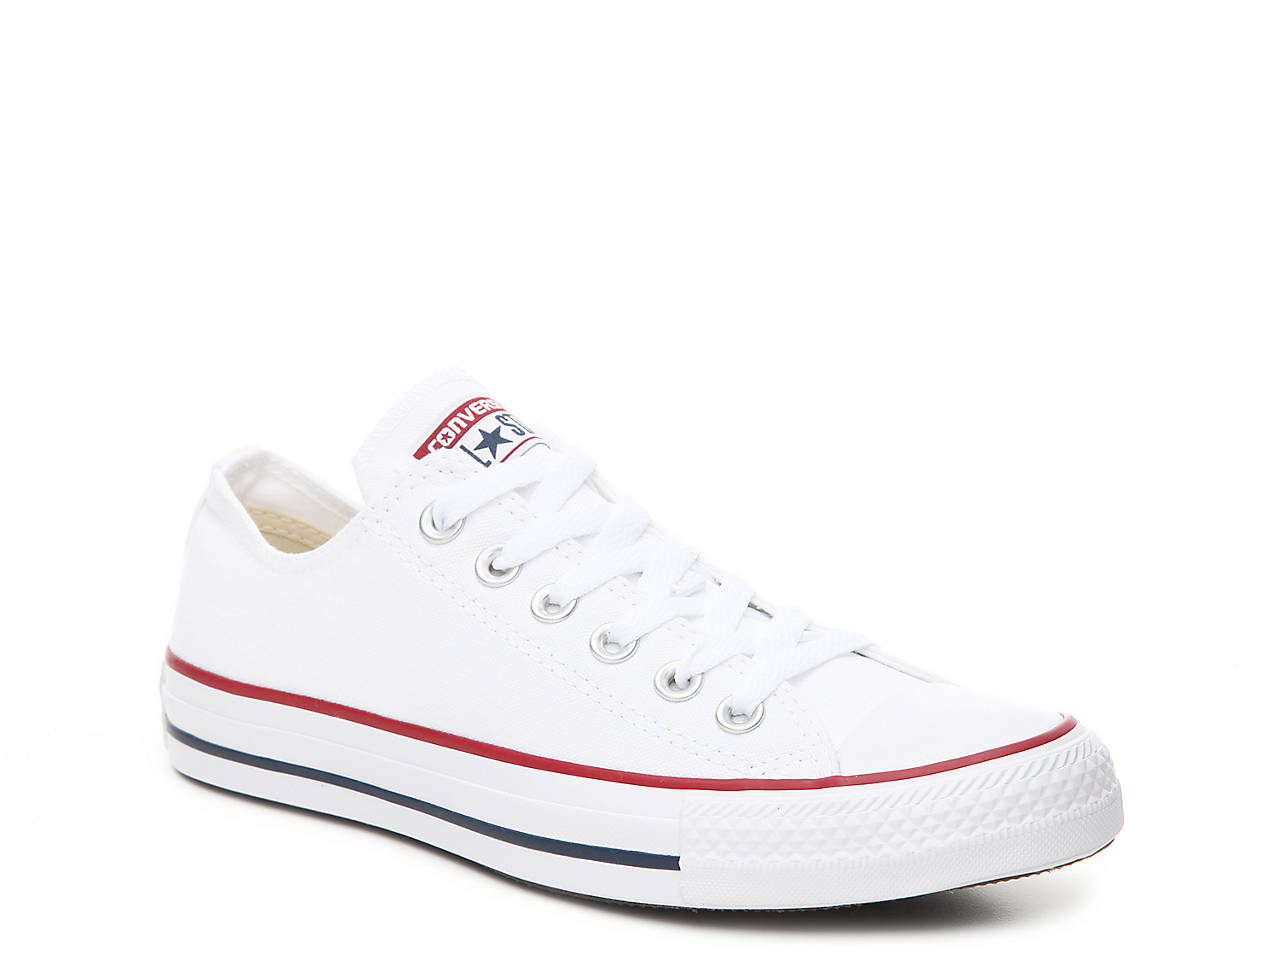 Chuck Taylor All Star Sneaker - Womens